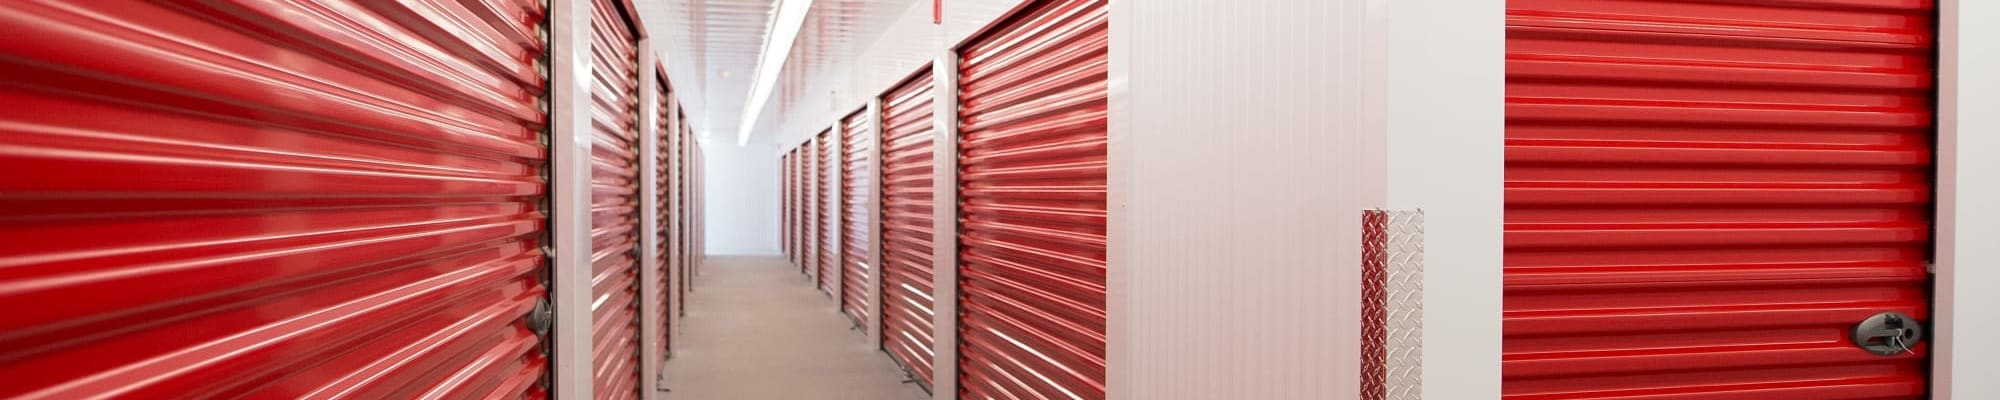 Refer a friend to Mini Storage Depot in Knoxville, Tennessee